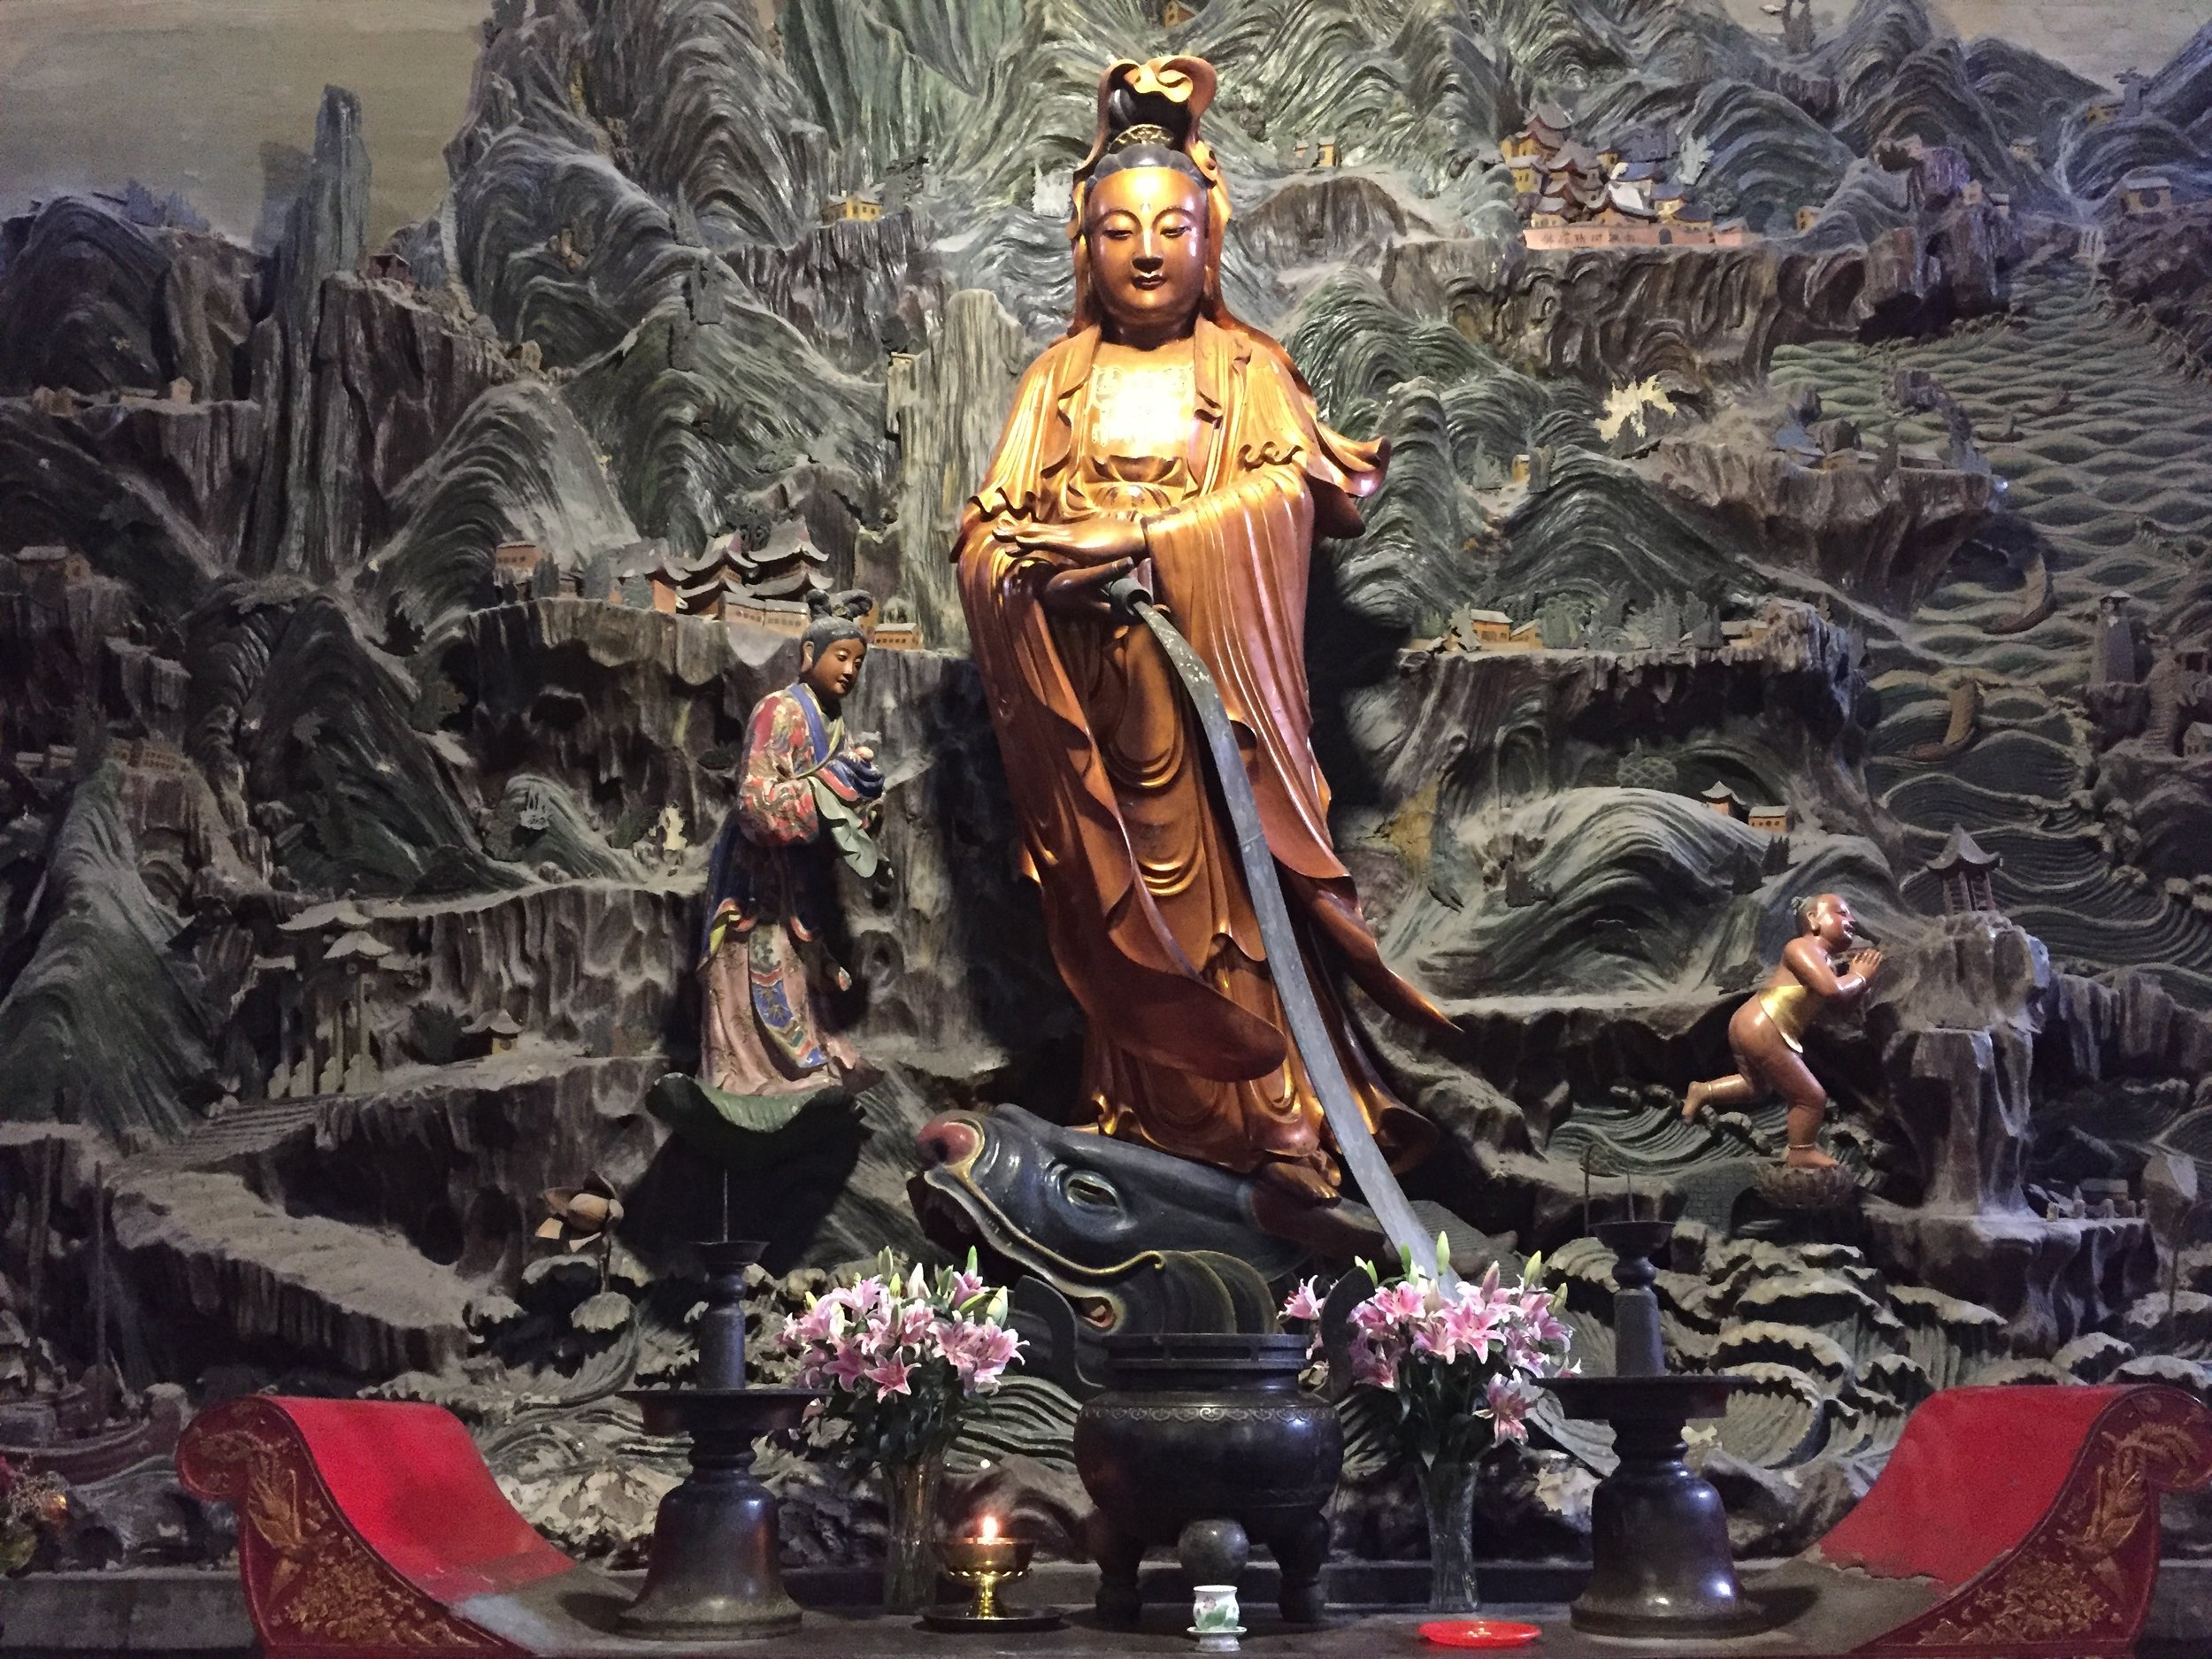 Guanyin, Goddess of Compassion, gracefully presides over Guoqing Temple (Mount Tiantai, Zhejiang)